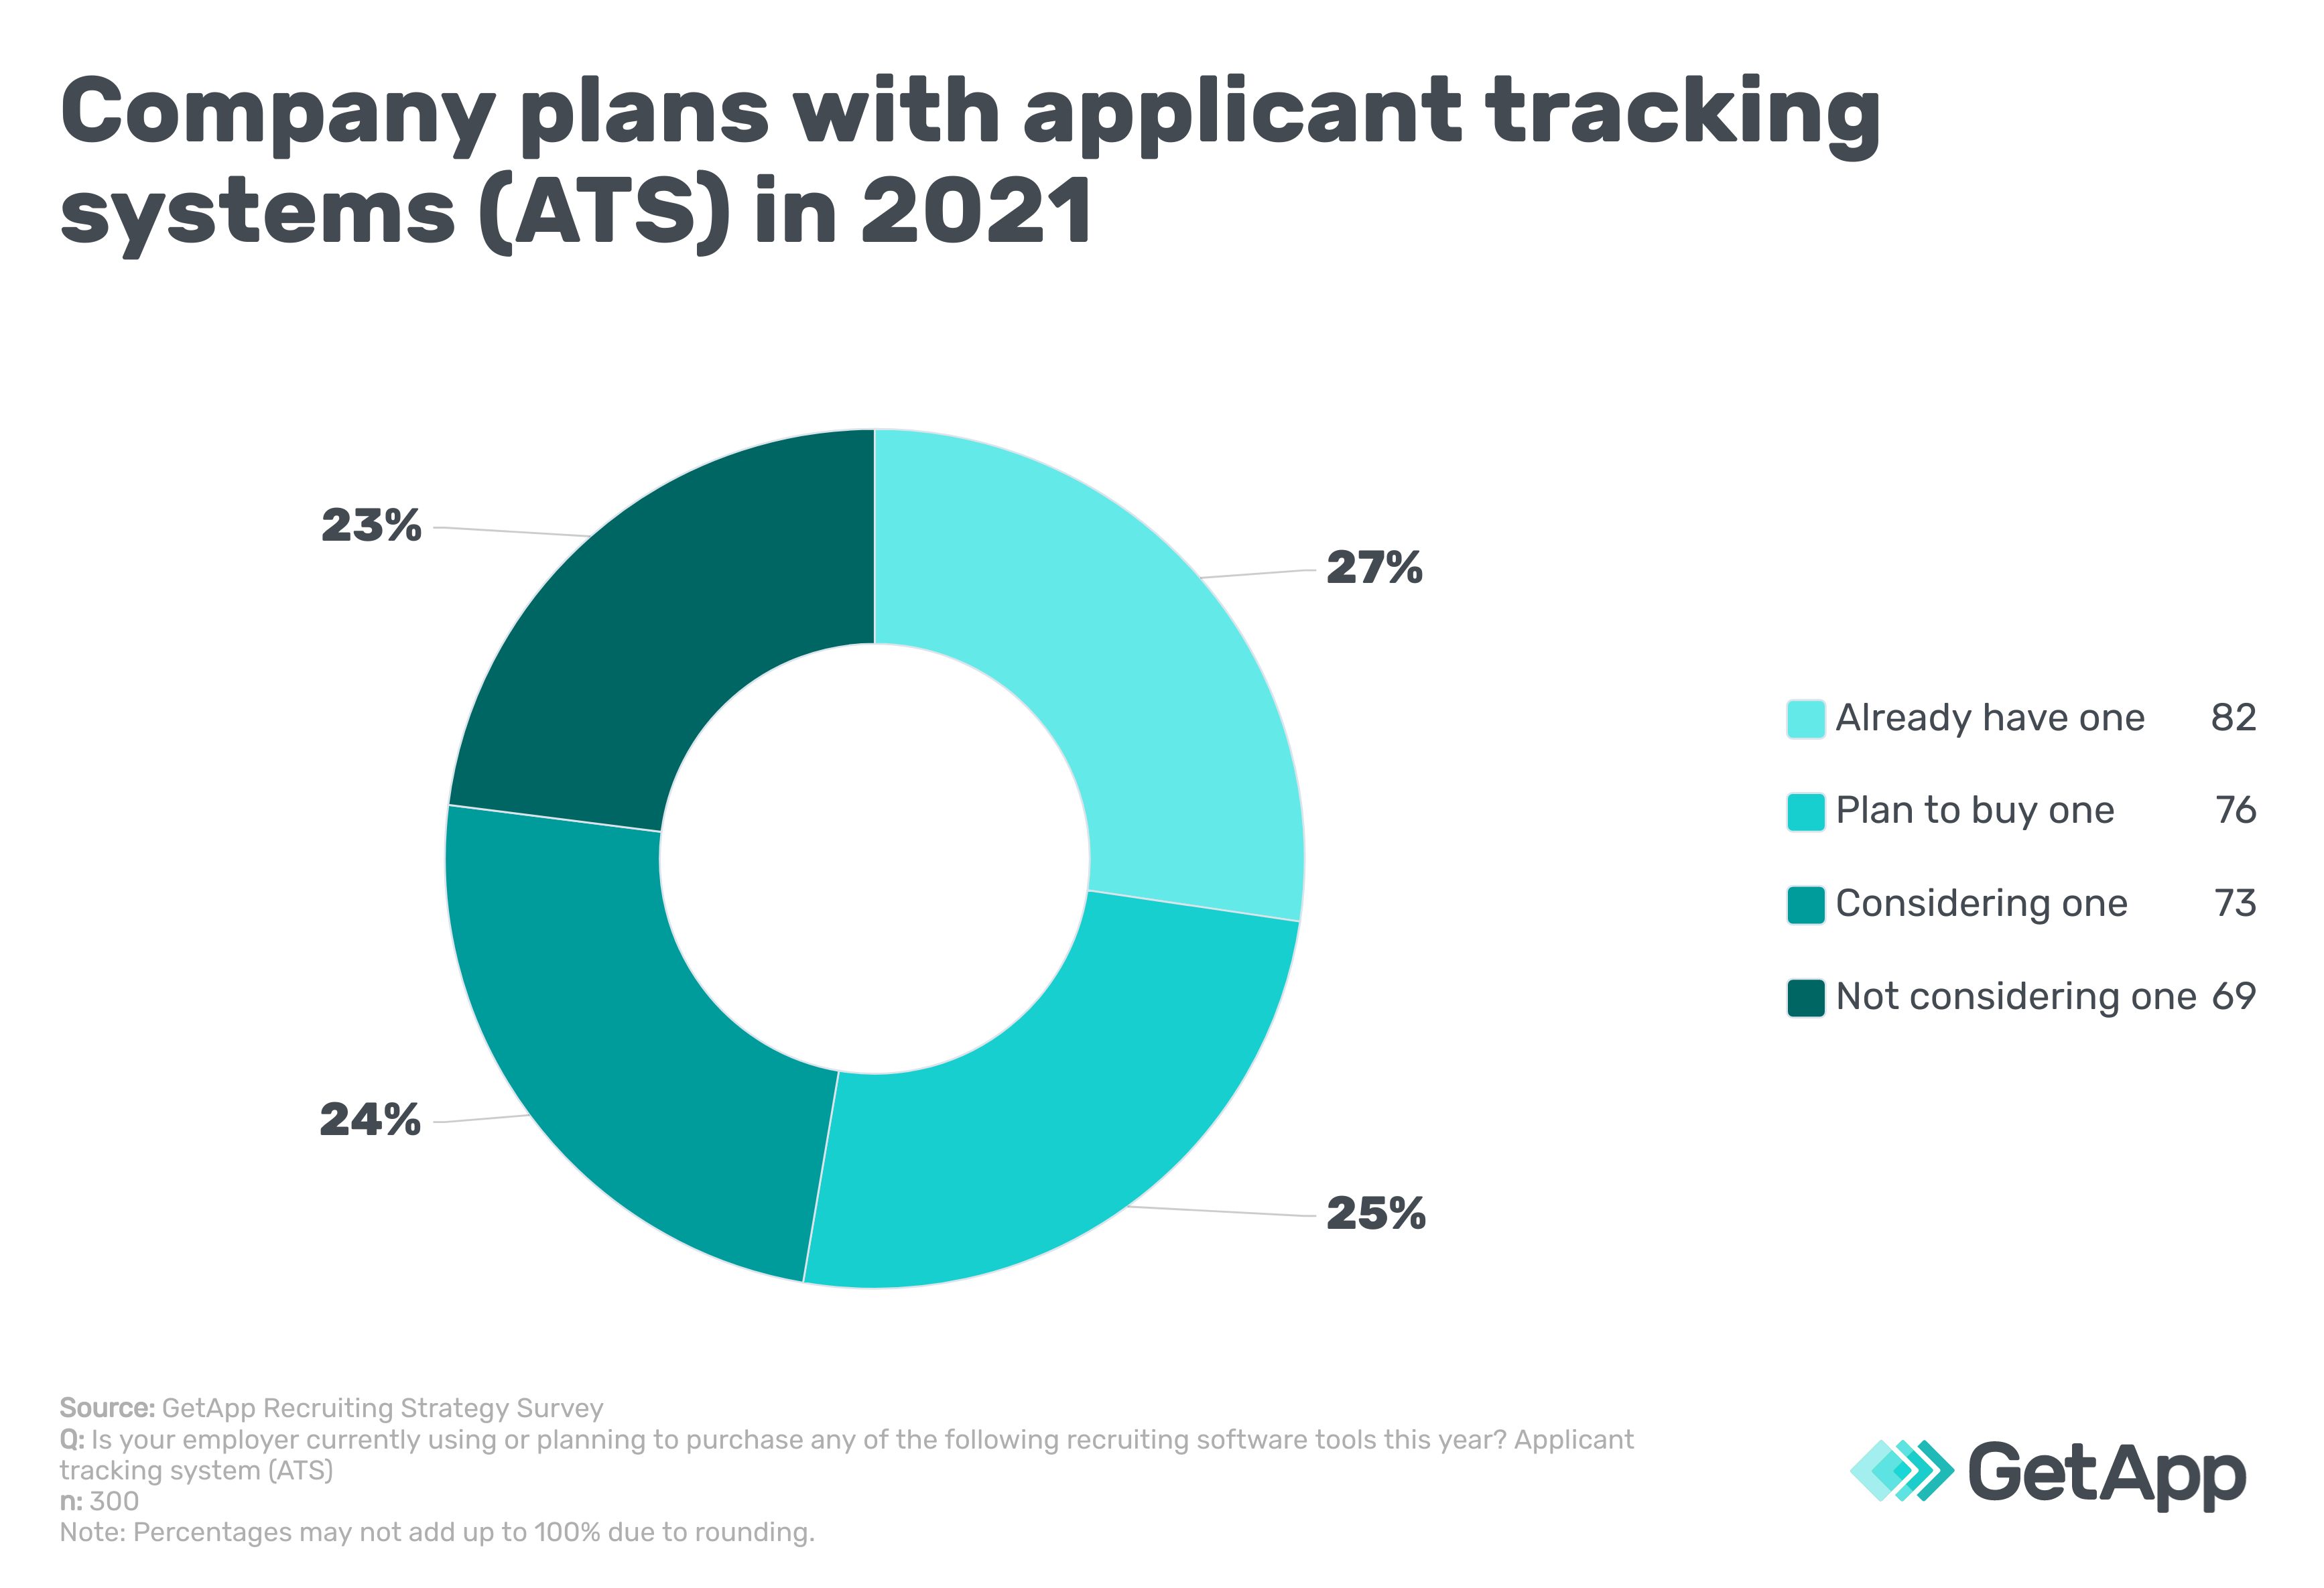 Company plans with applicant tracking systems (ATS) in 2021